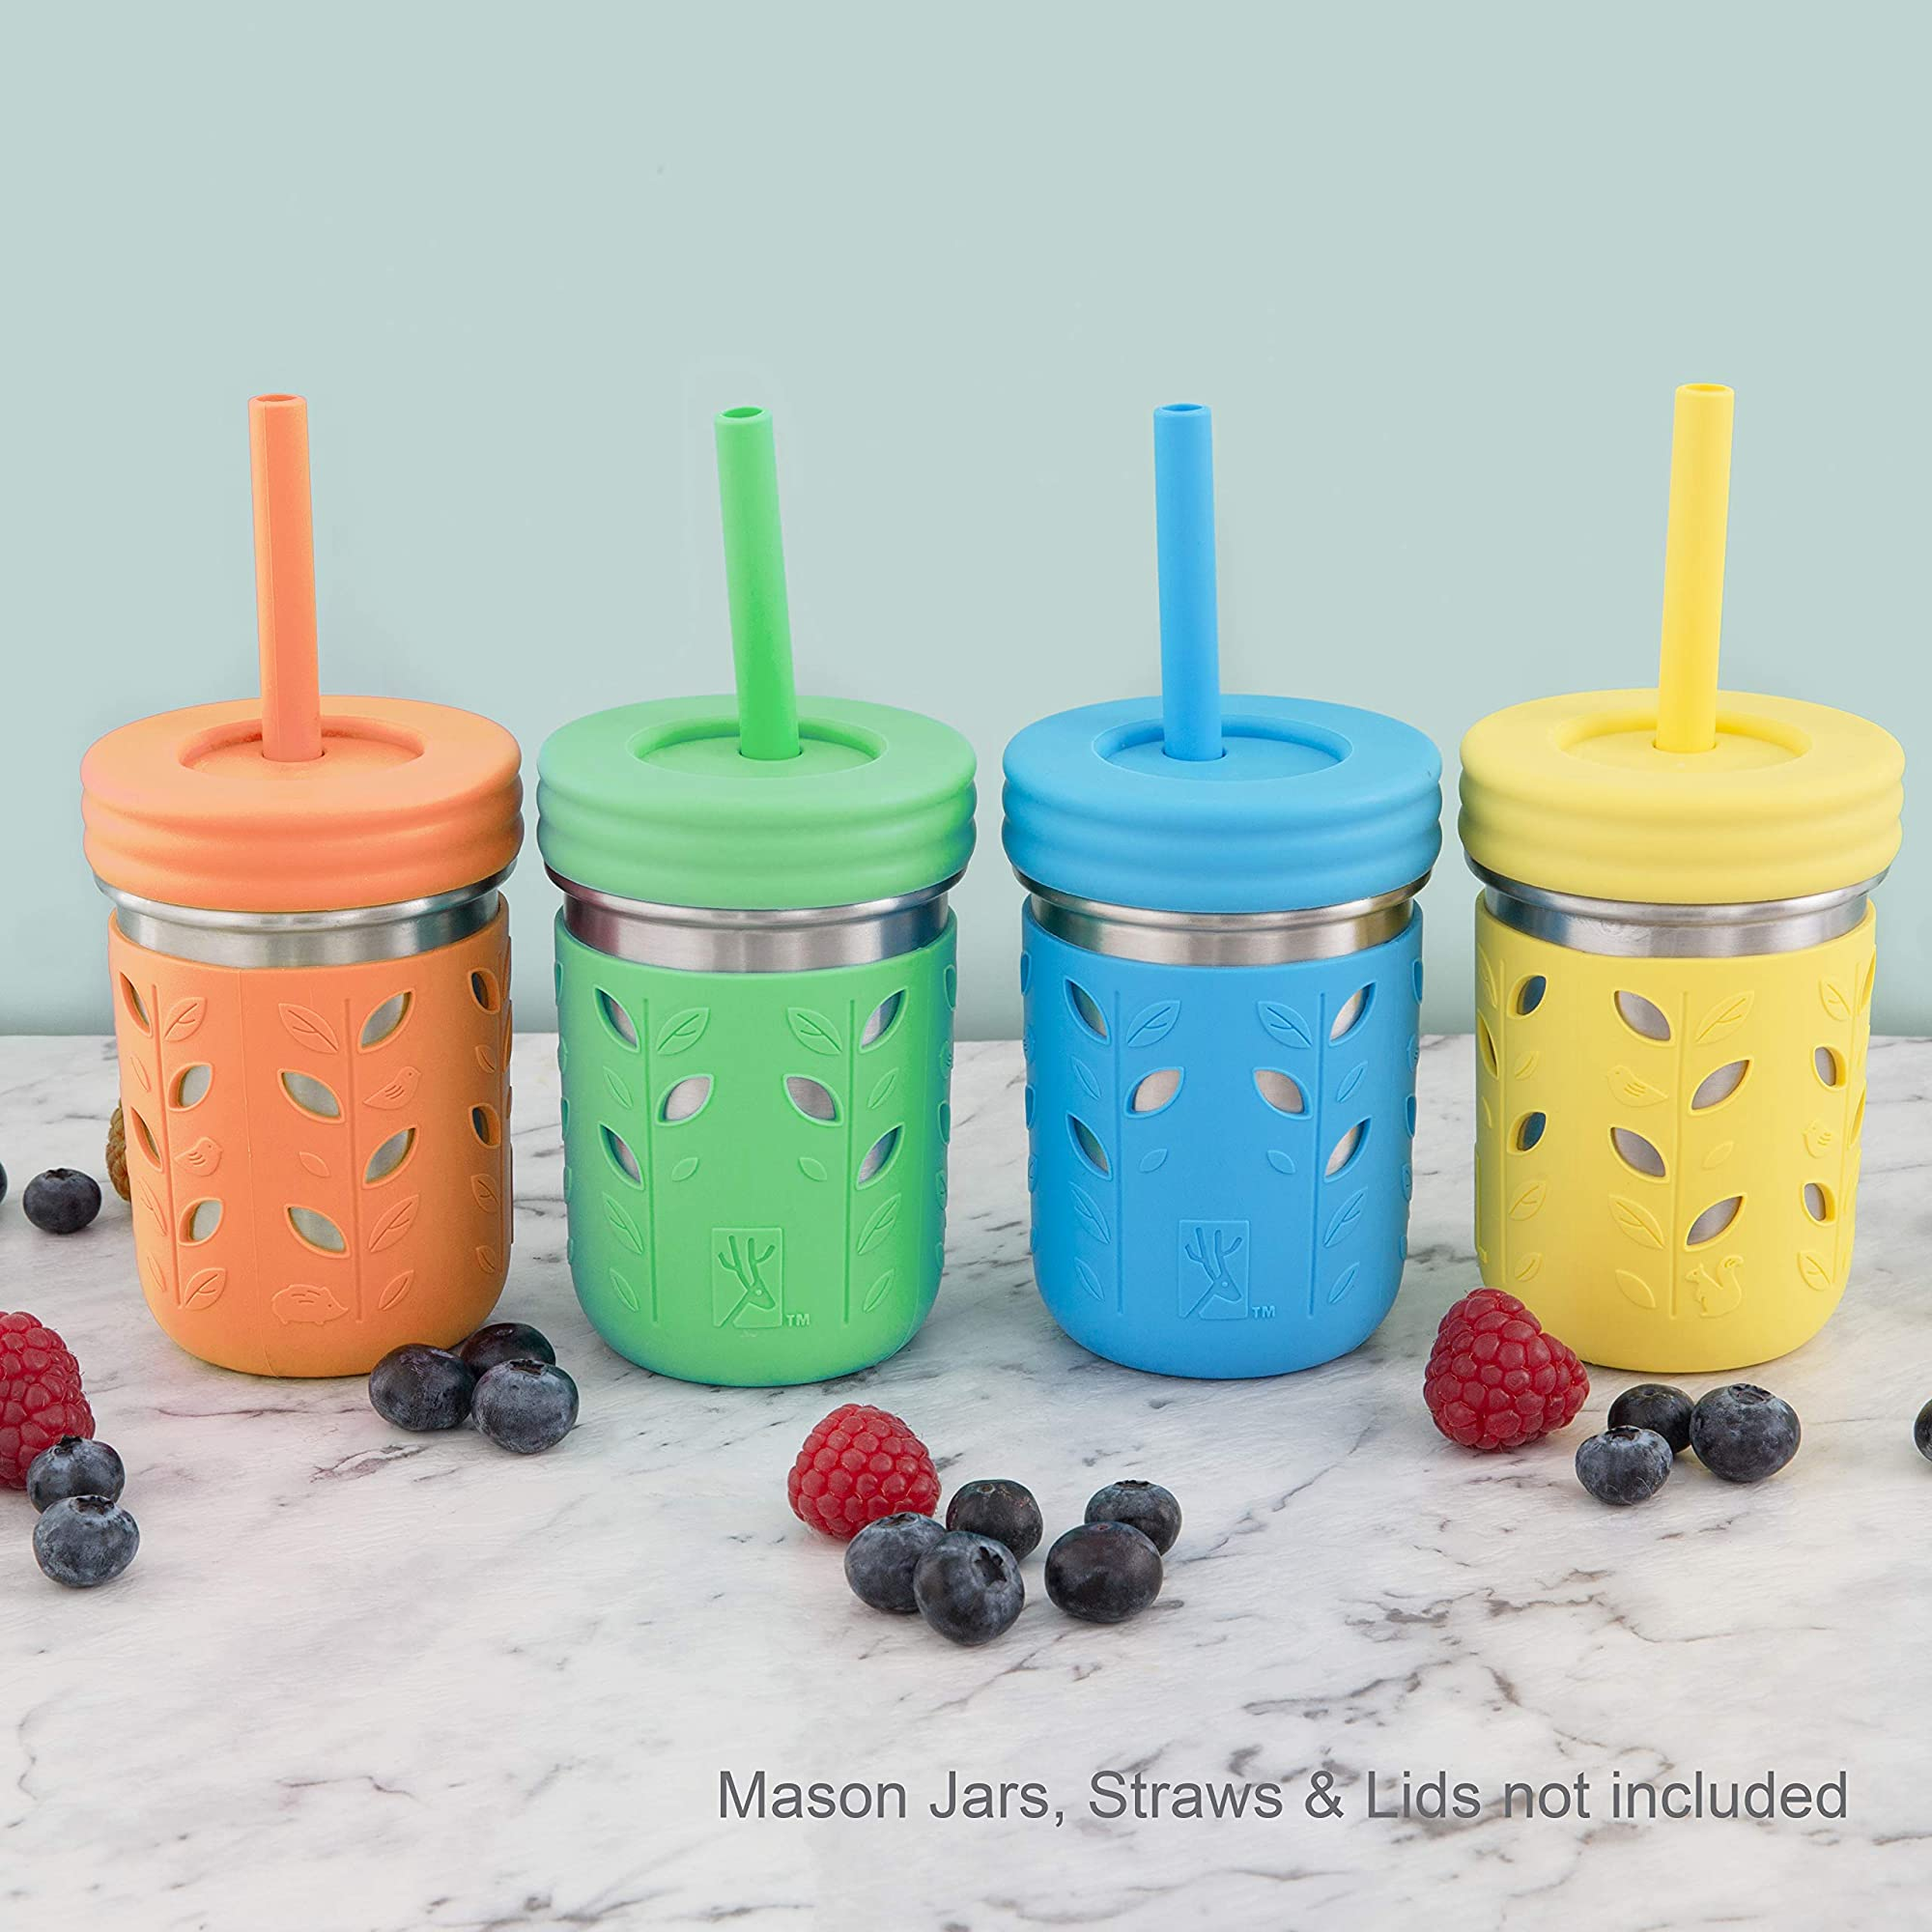 Stainless Steel Mason Jar Sleeves